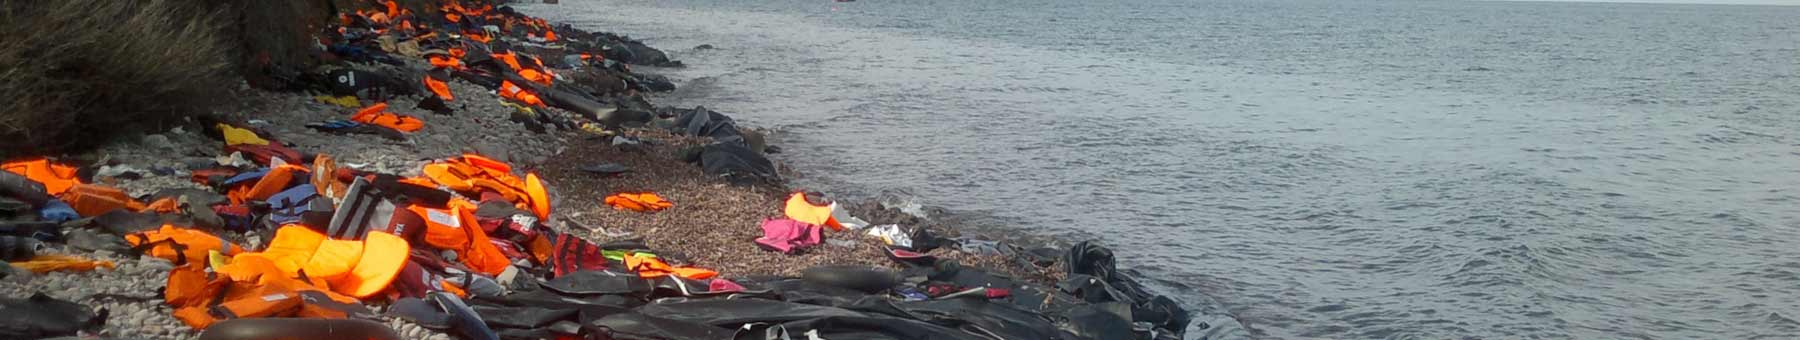 Life jackets discarded on the beach at Lesbos, Greece.